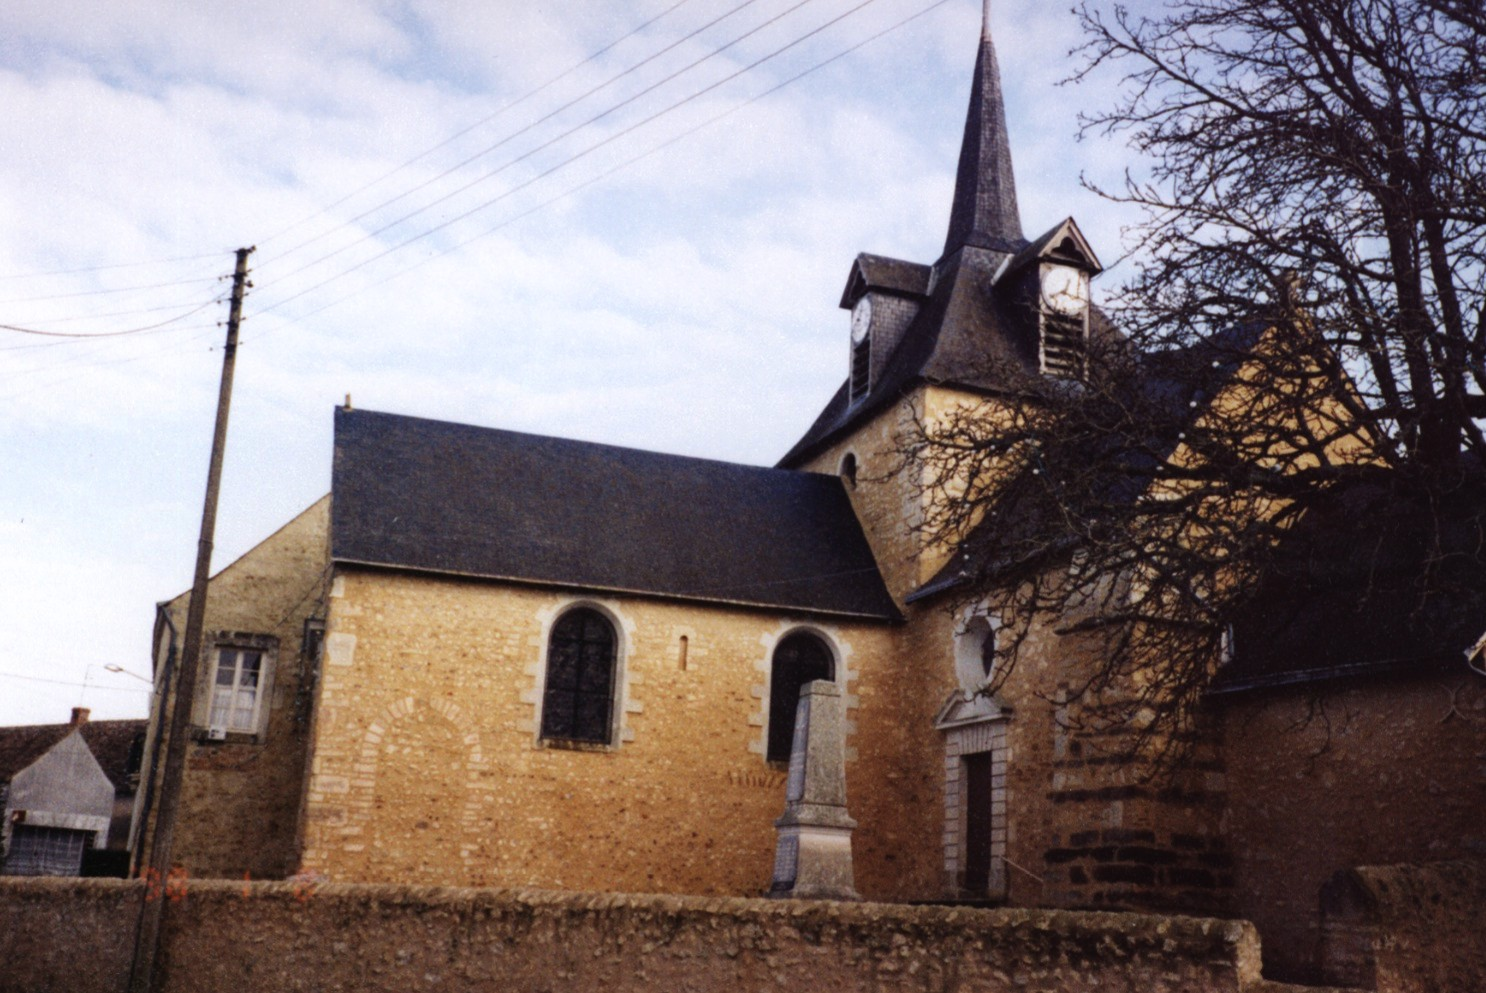 tasse church.jpg (347735 bytes)